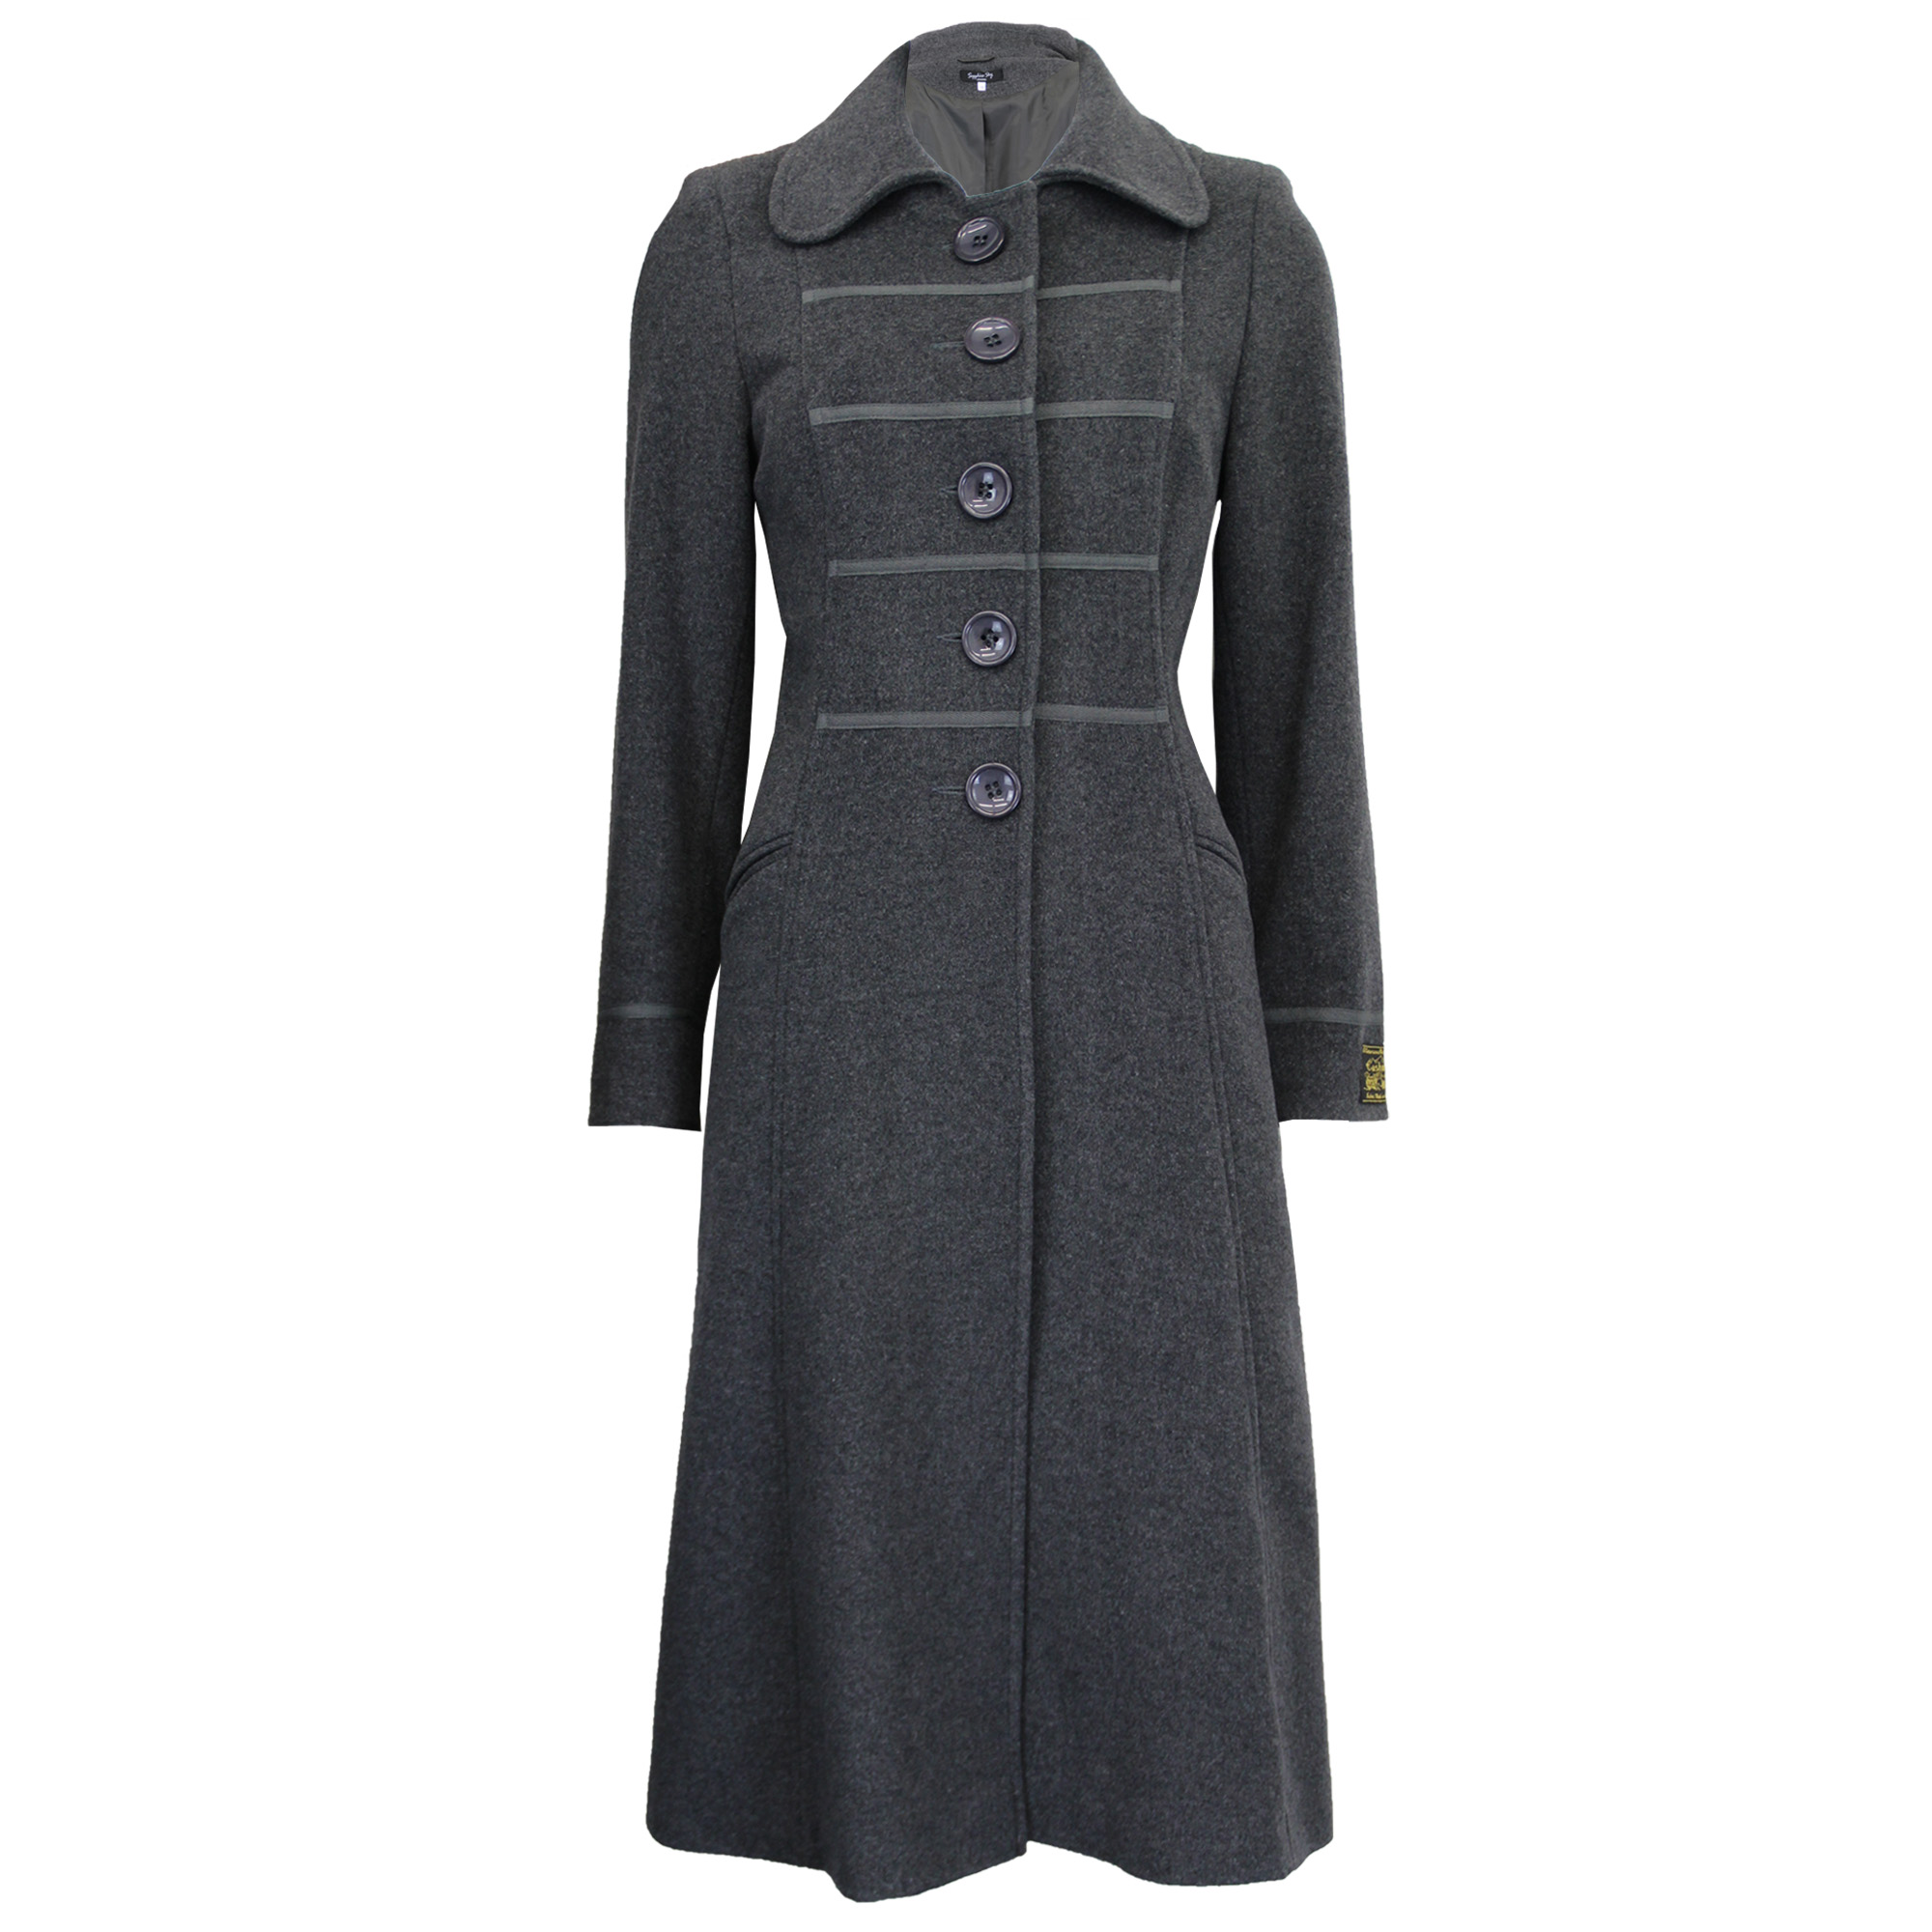 thumbnail 5 - Ladies-Wool-Cashmere-Coat-Womens-Jacket-Outerwear-Trench-Overcoat-Winter-Warm